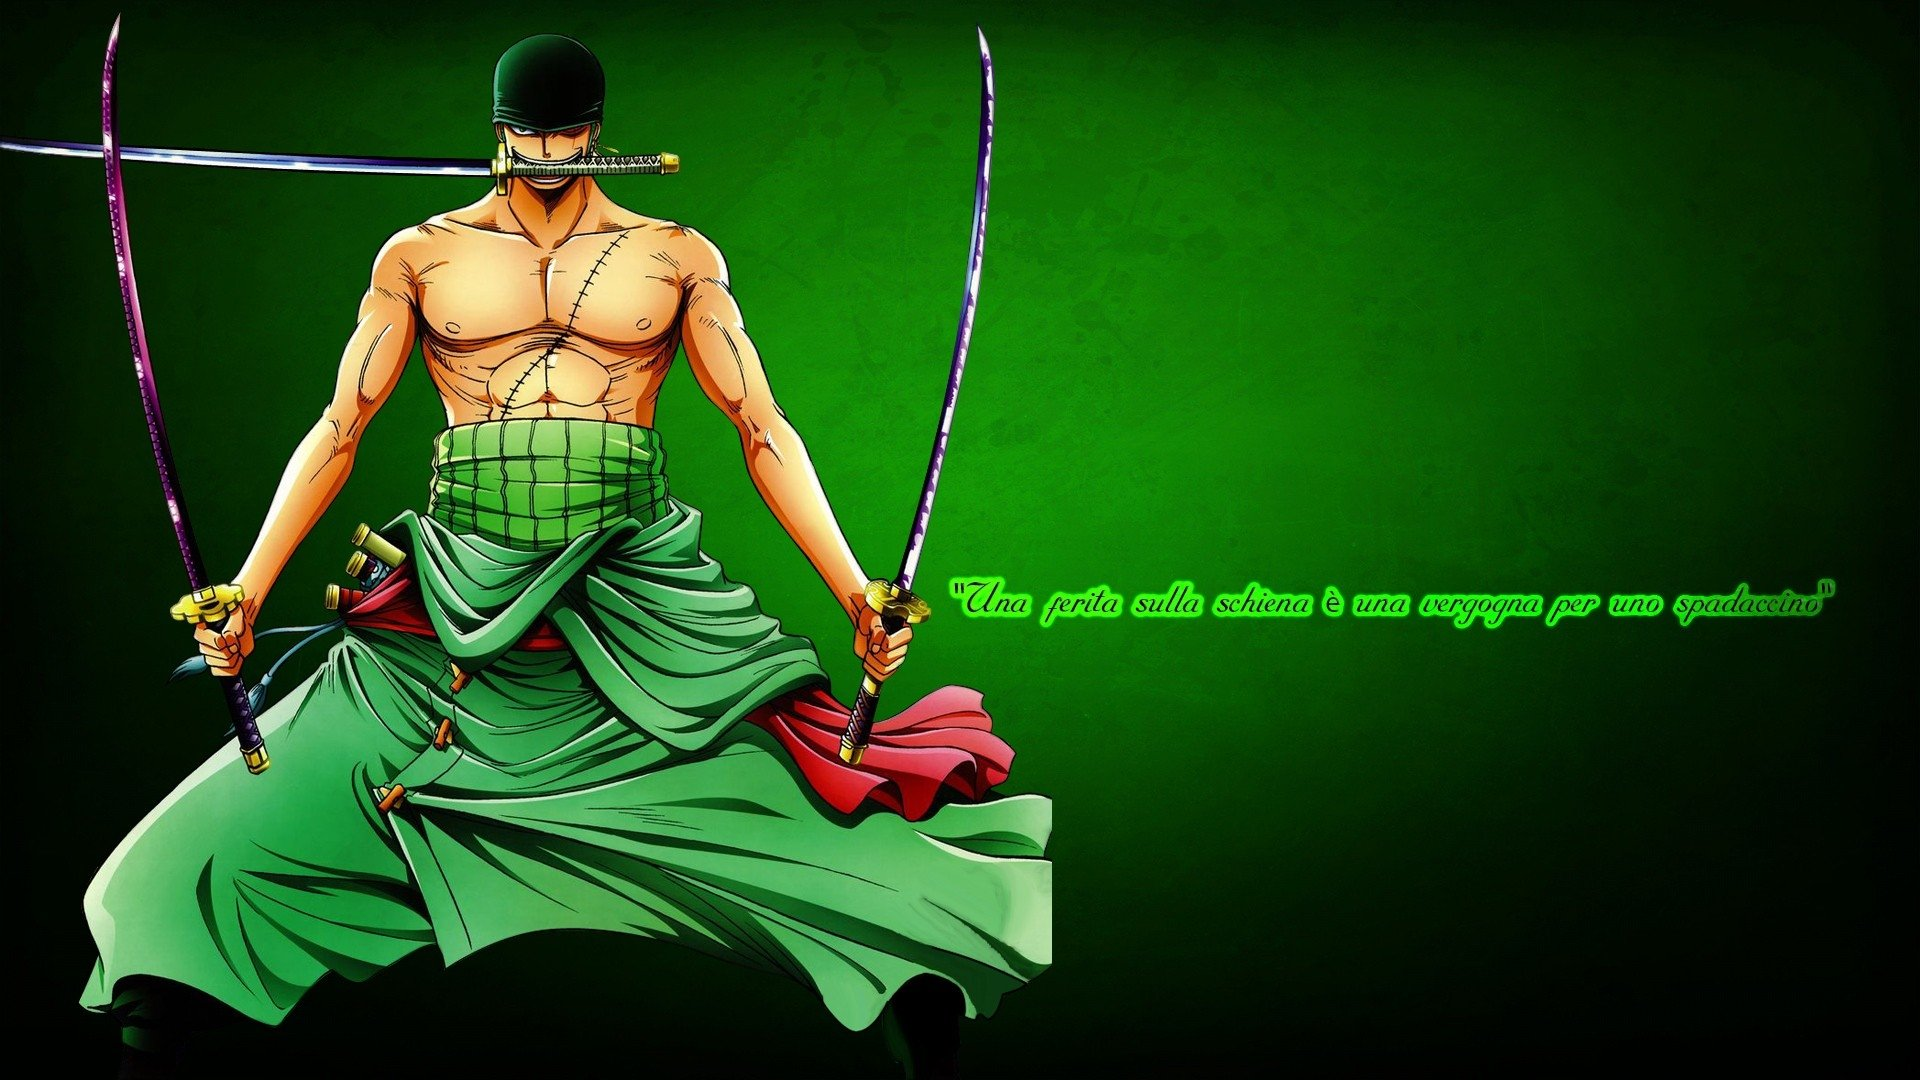 179 Zoro Roronoa HD Wallpapers | Backgrounds - Wallpaper Abyss